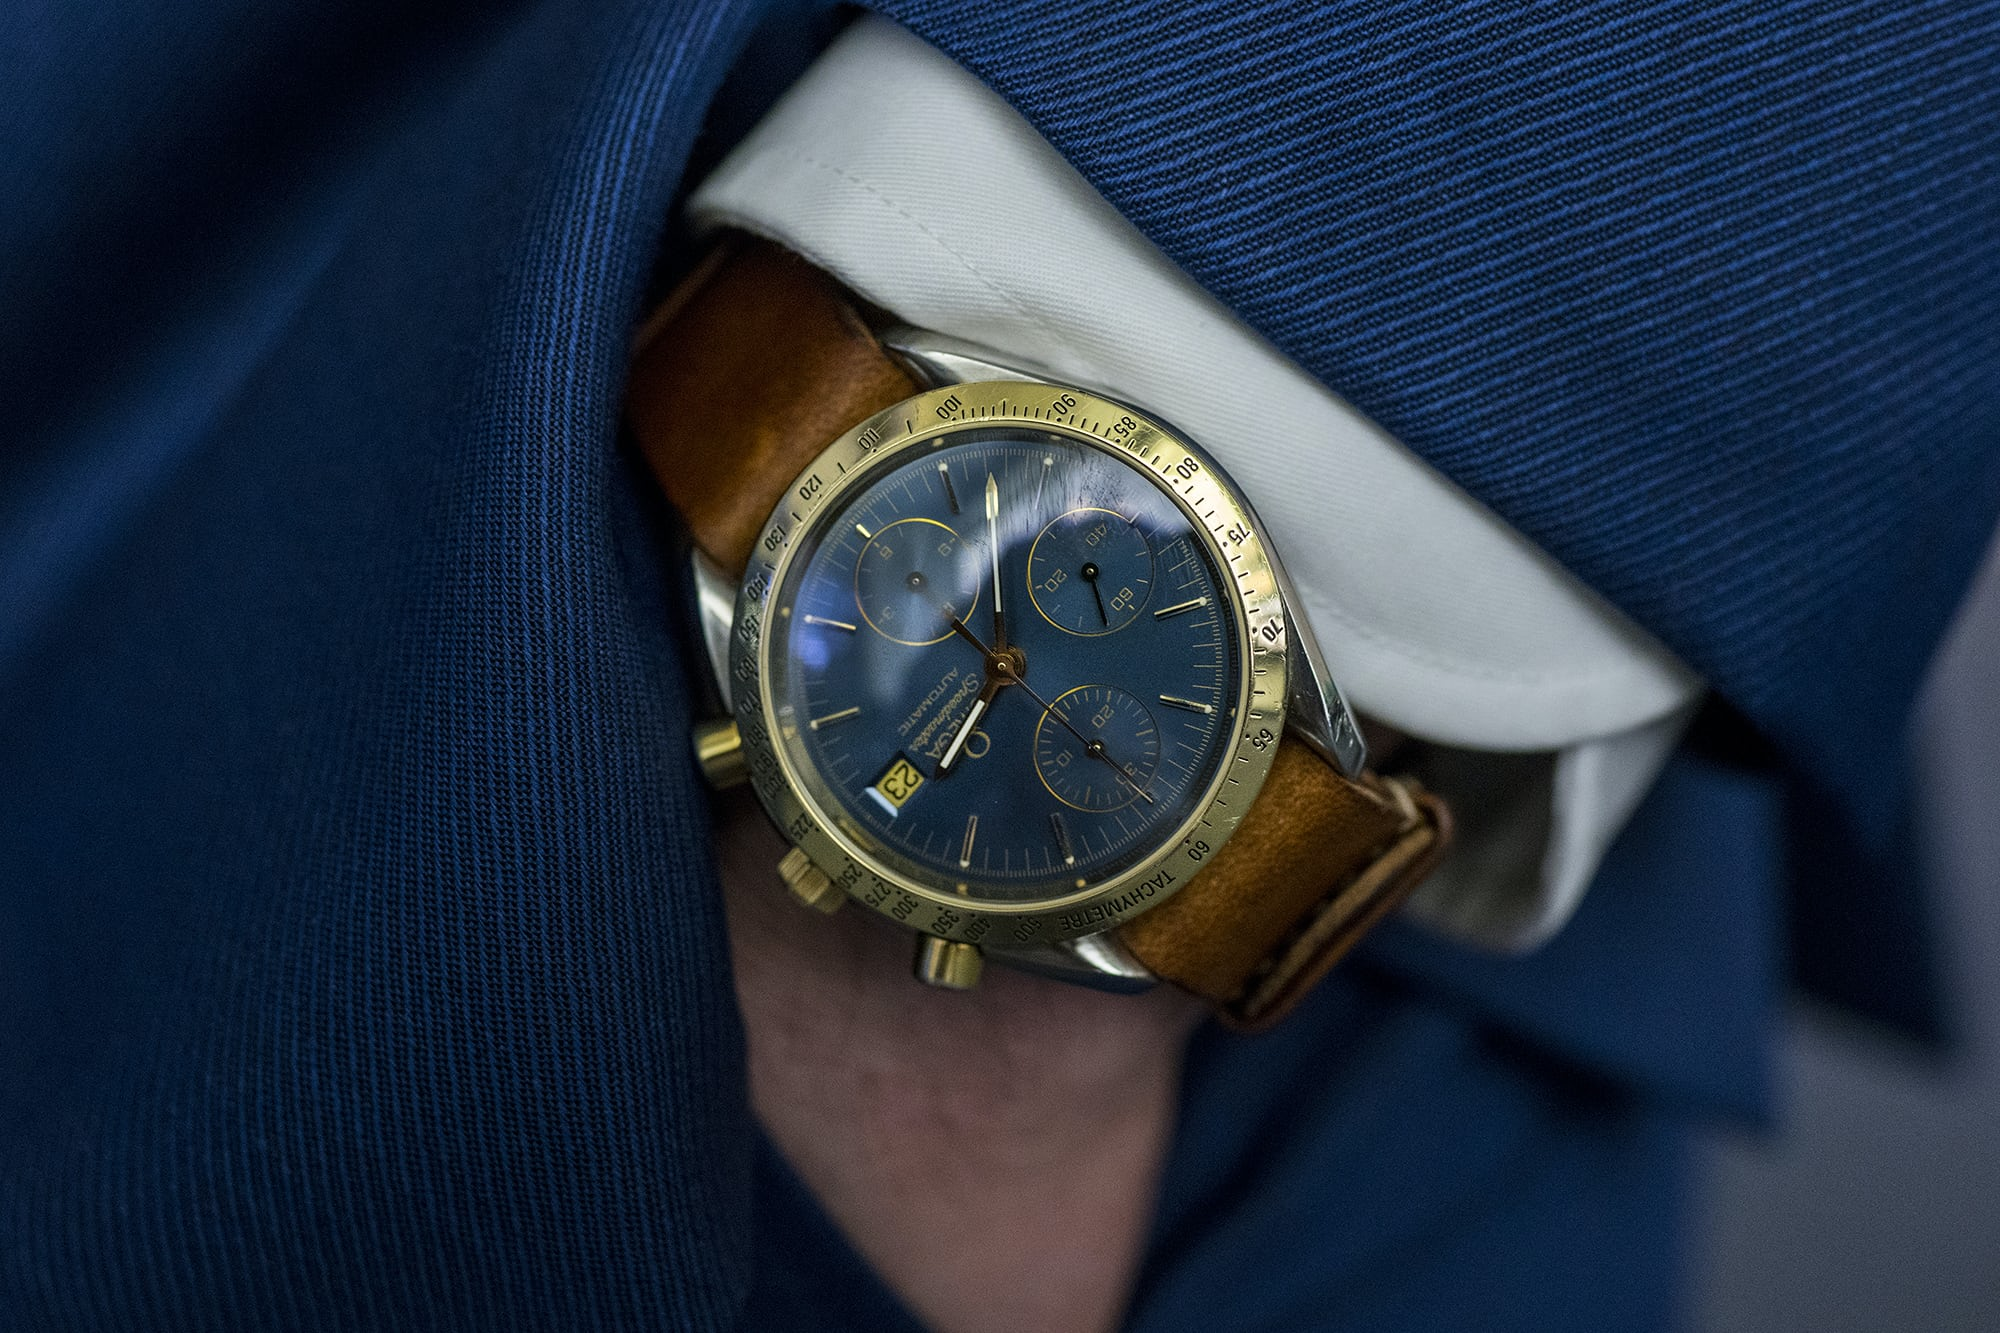 Photo Report: The Fashion And Watches Of Baselworld 2018 Photo Report: The Fashion And Watches Of Baselworld 2018 DSC00688 copy